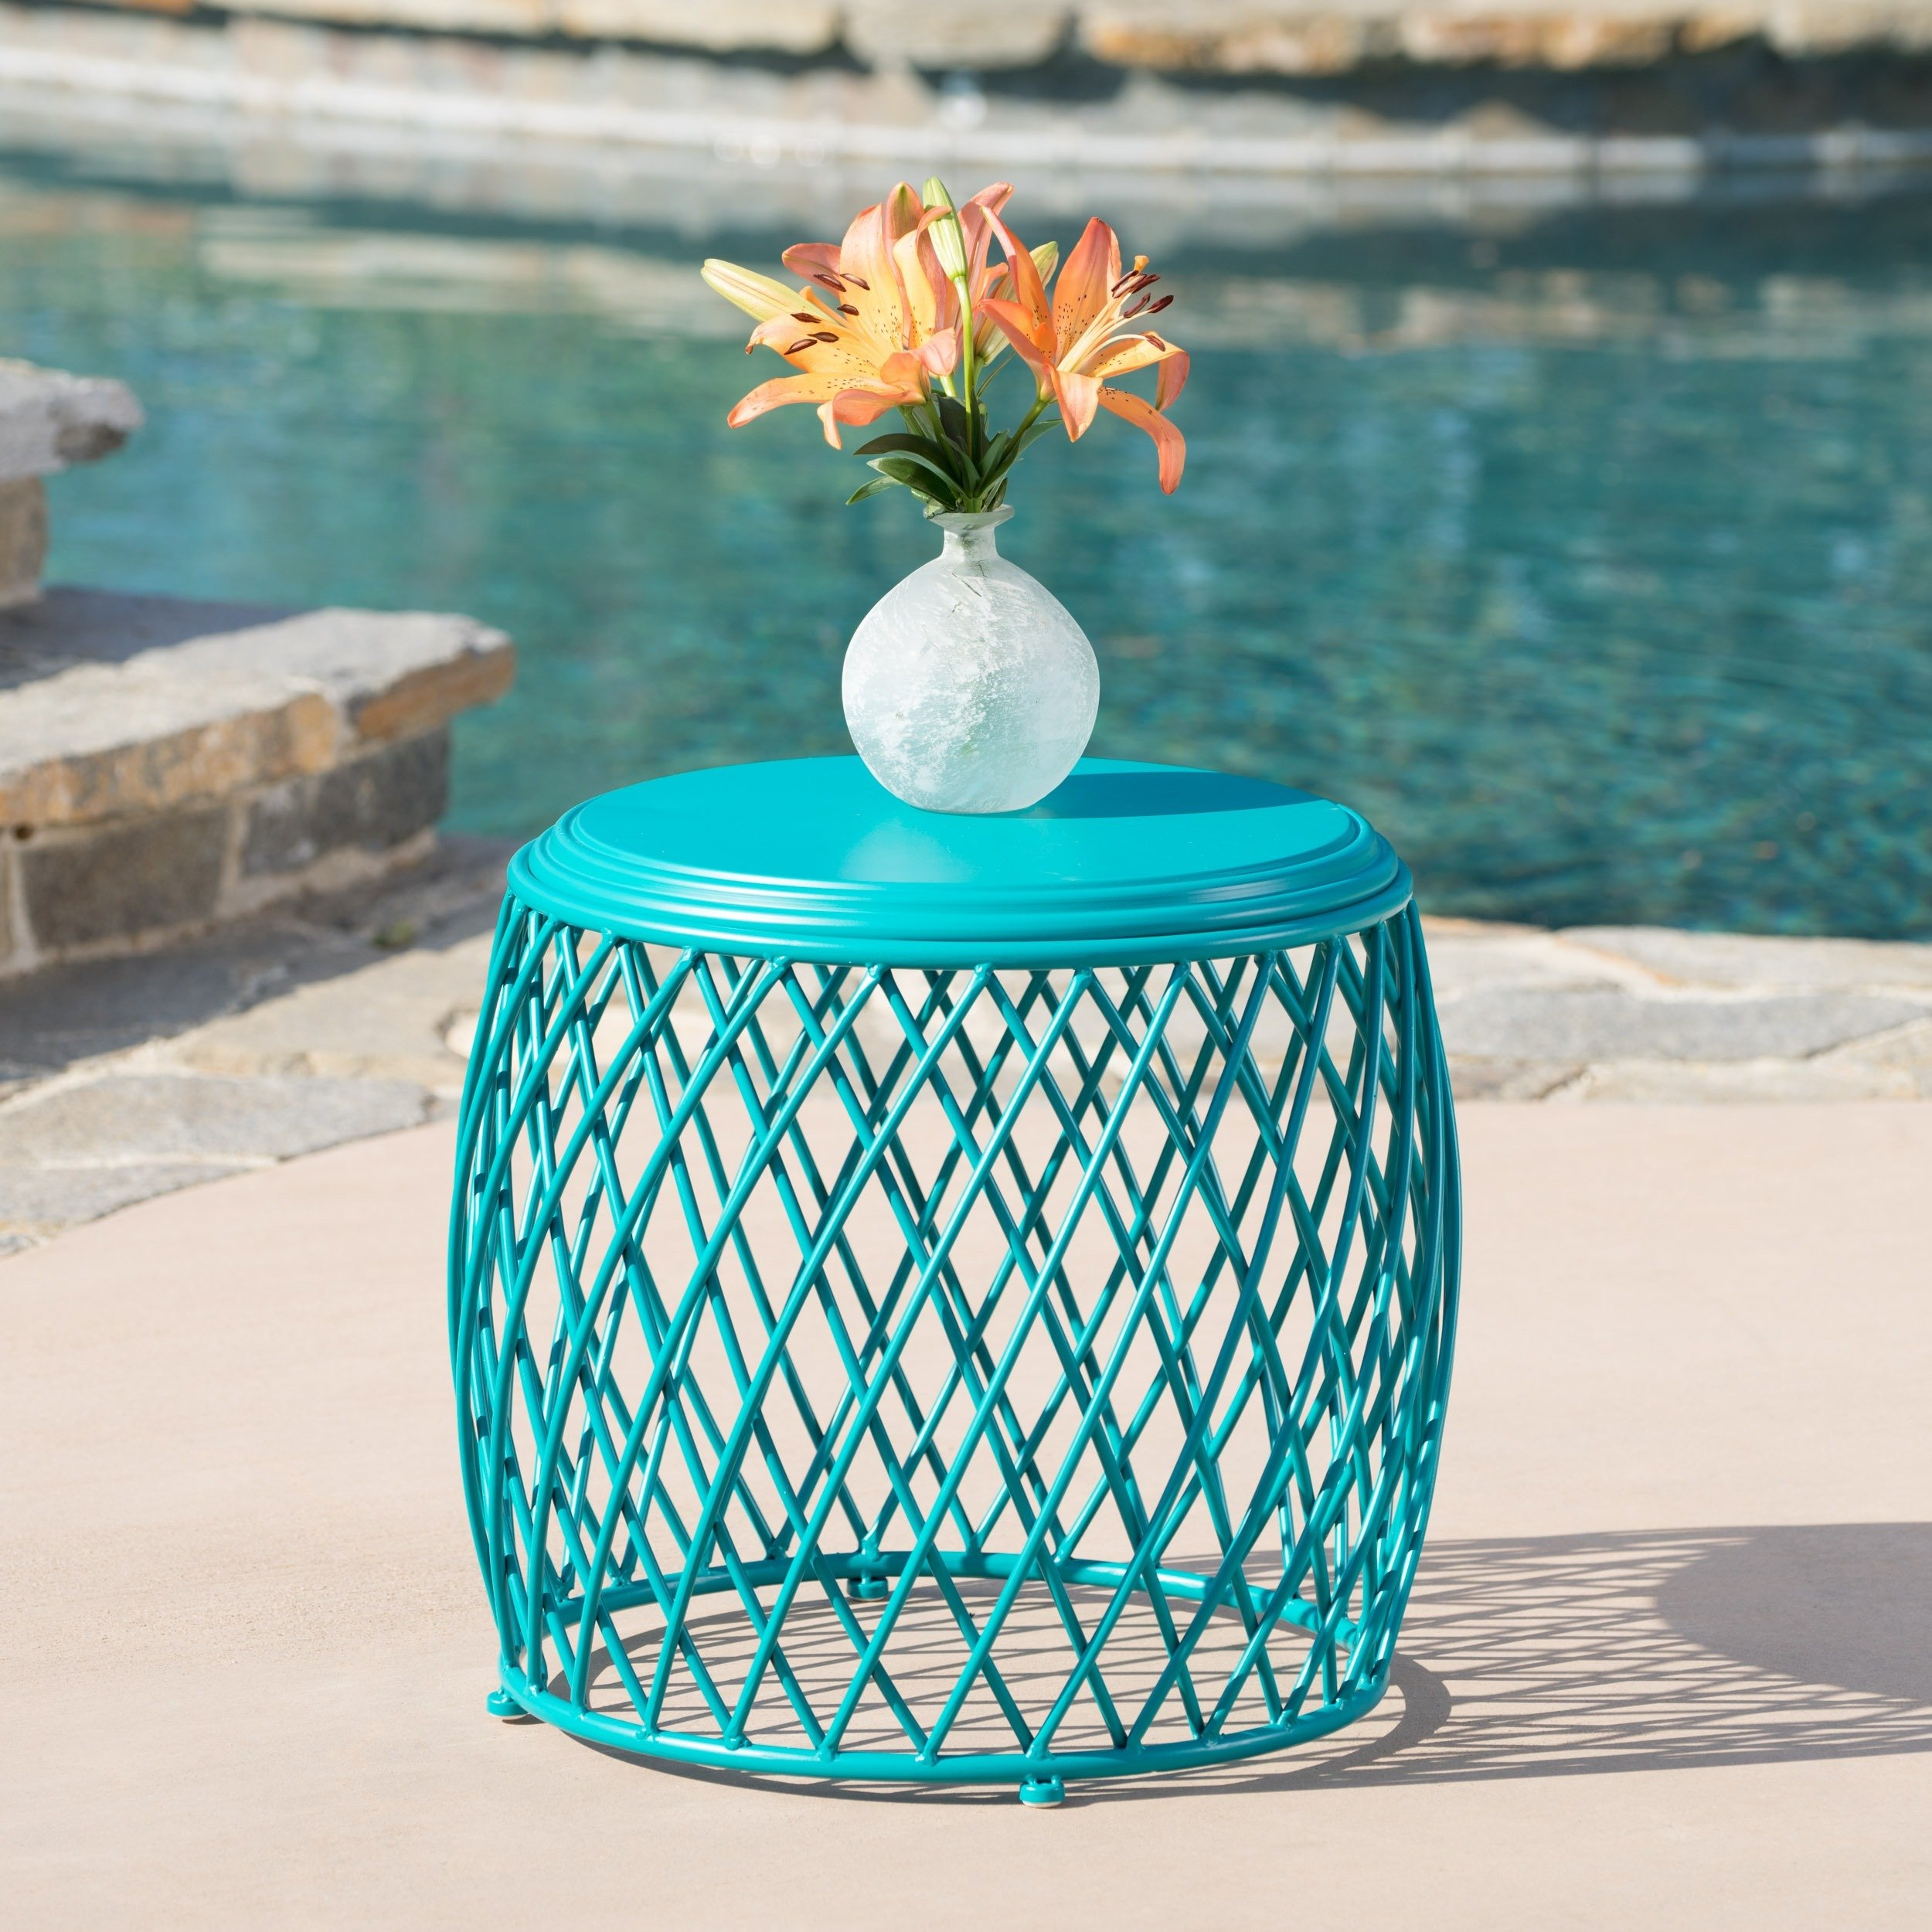 outdoor coffee side tables our best alamera inch lattice table christopher knight home stratford wicker folding accent bronze patio furniture wood with metal frame retro style